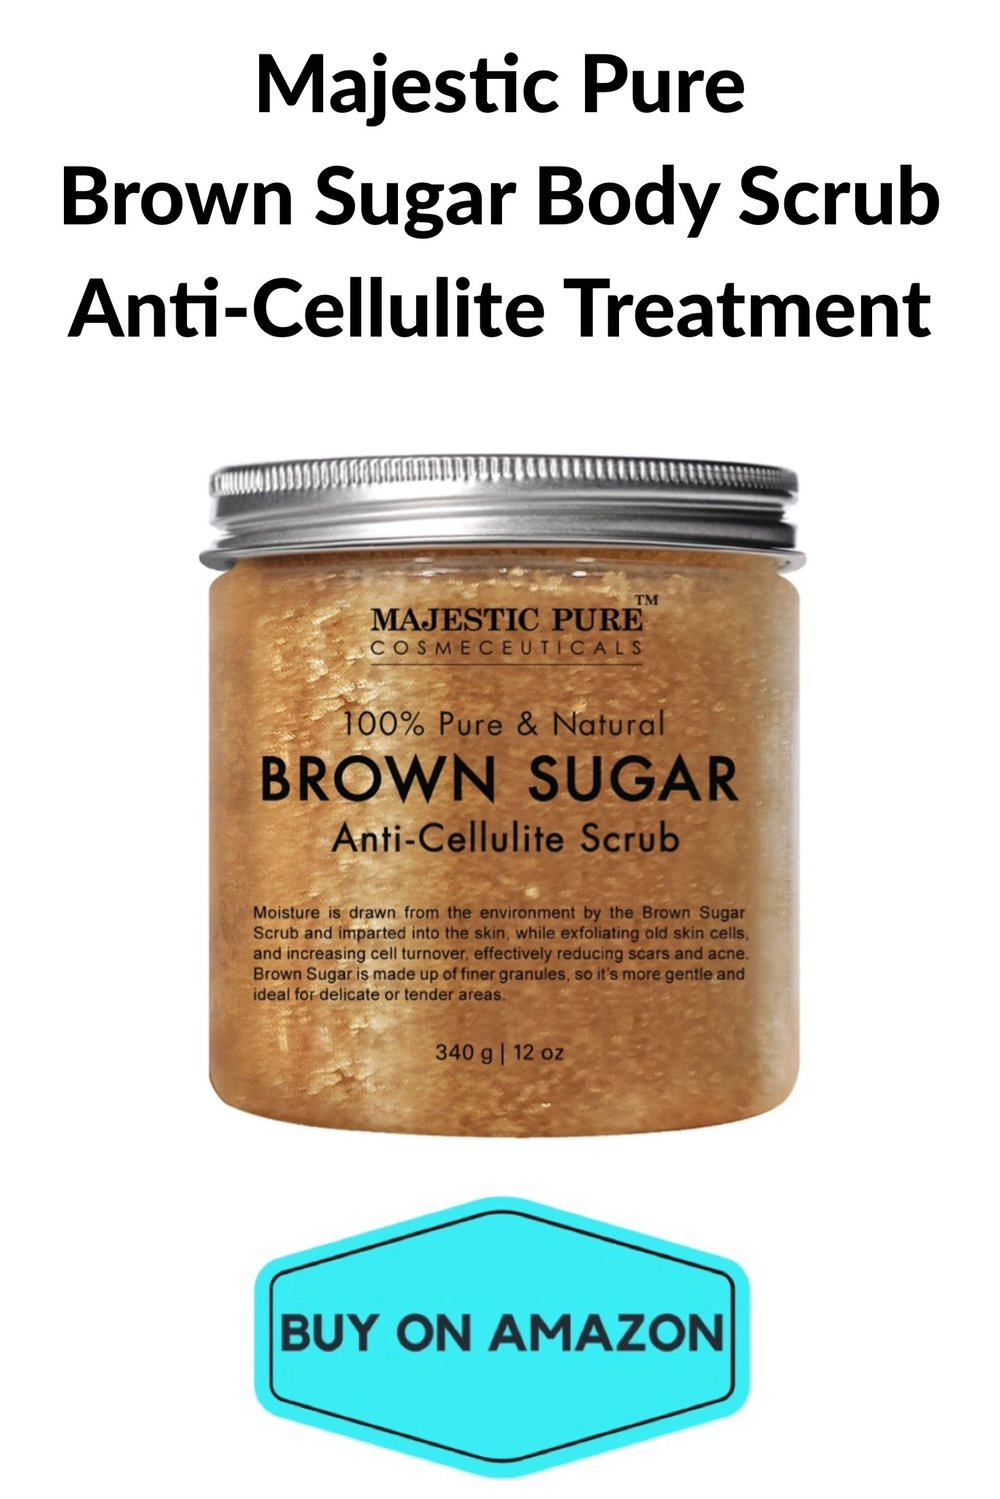 Brown Sugar Body Scrub Anti-Cellulite Treatment